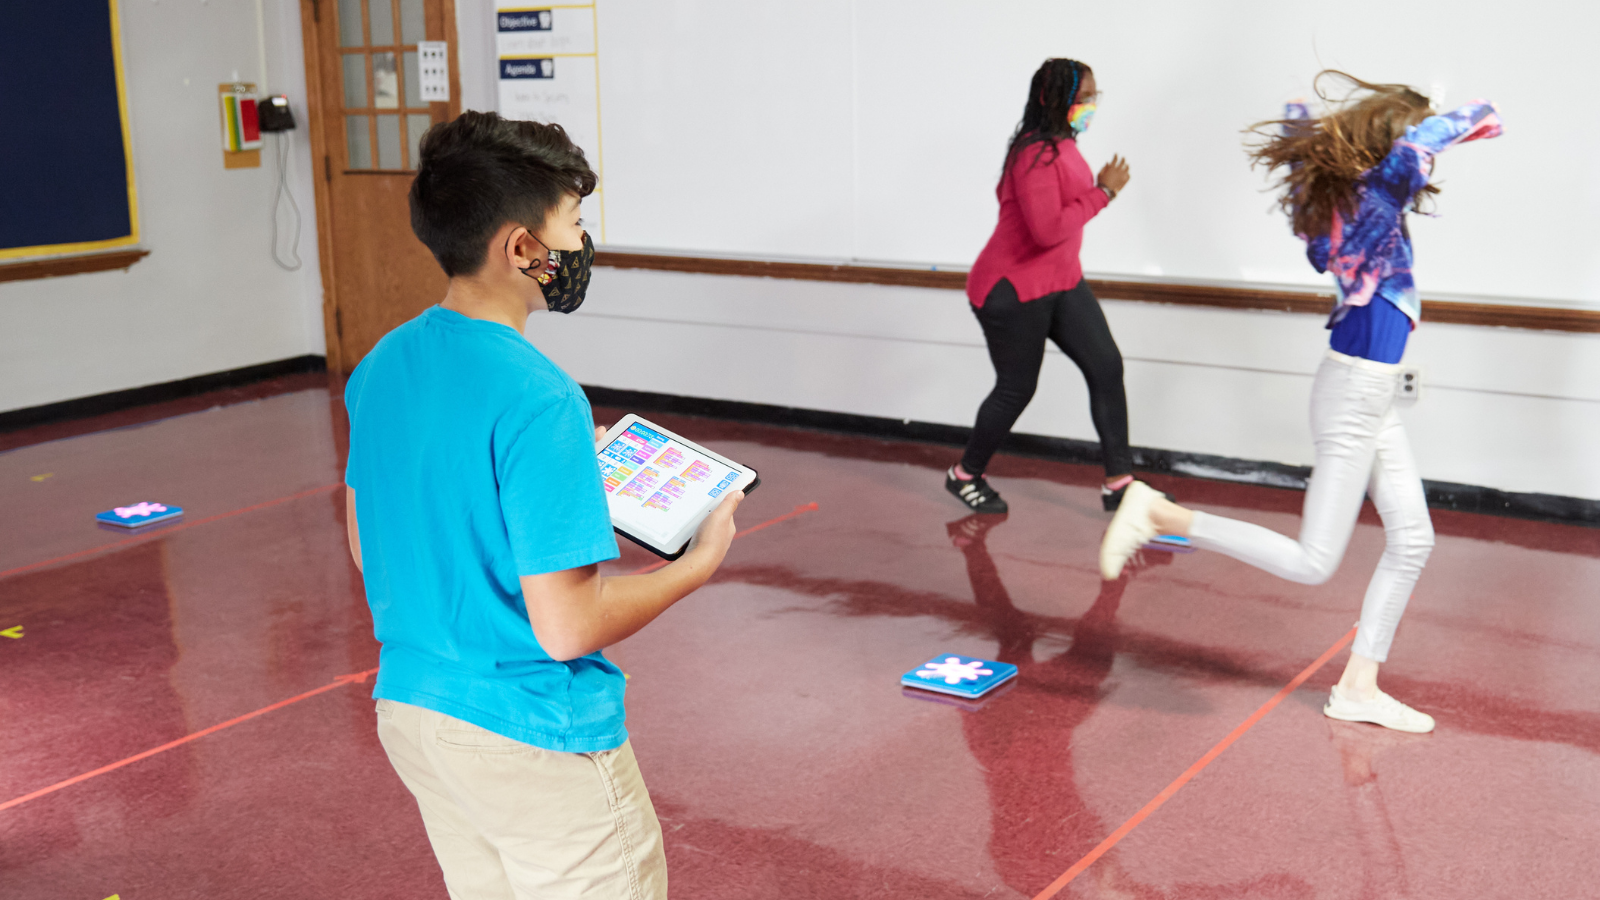 4 Ways Play-Based Learning Supports Student Growth